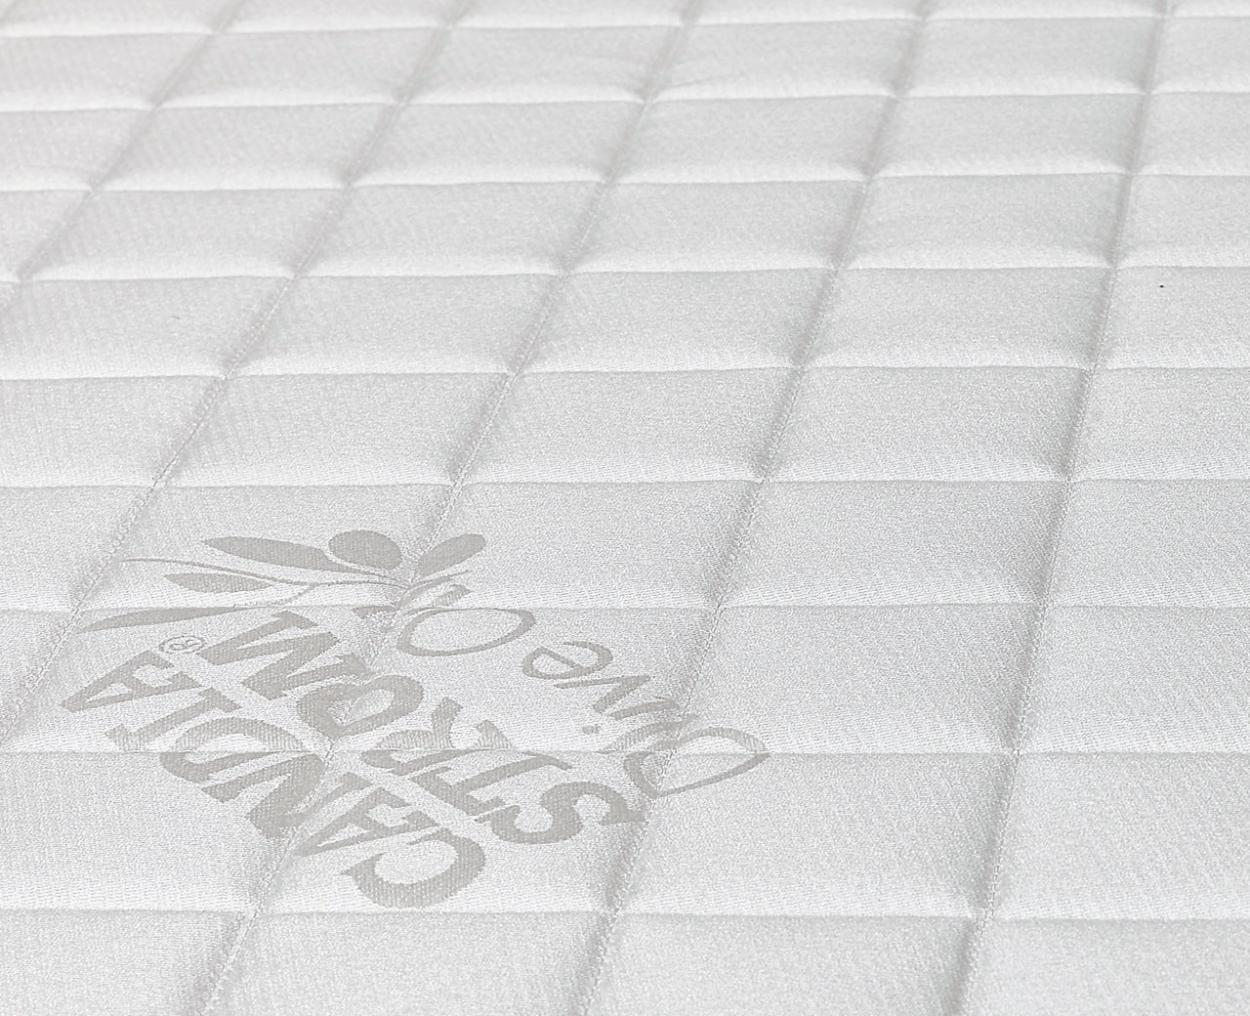 CandiaStrom - Mattress MEDITERRANEAN TOUCH  - NATUREZZA COLLECTION -  Details